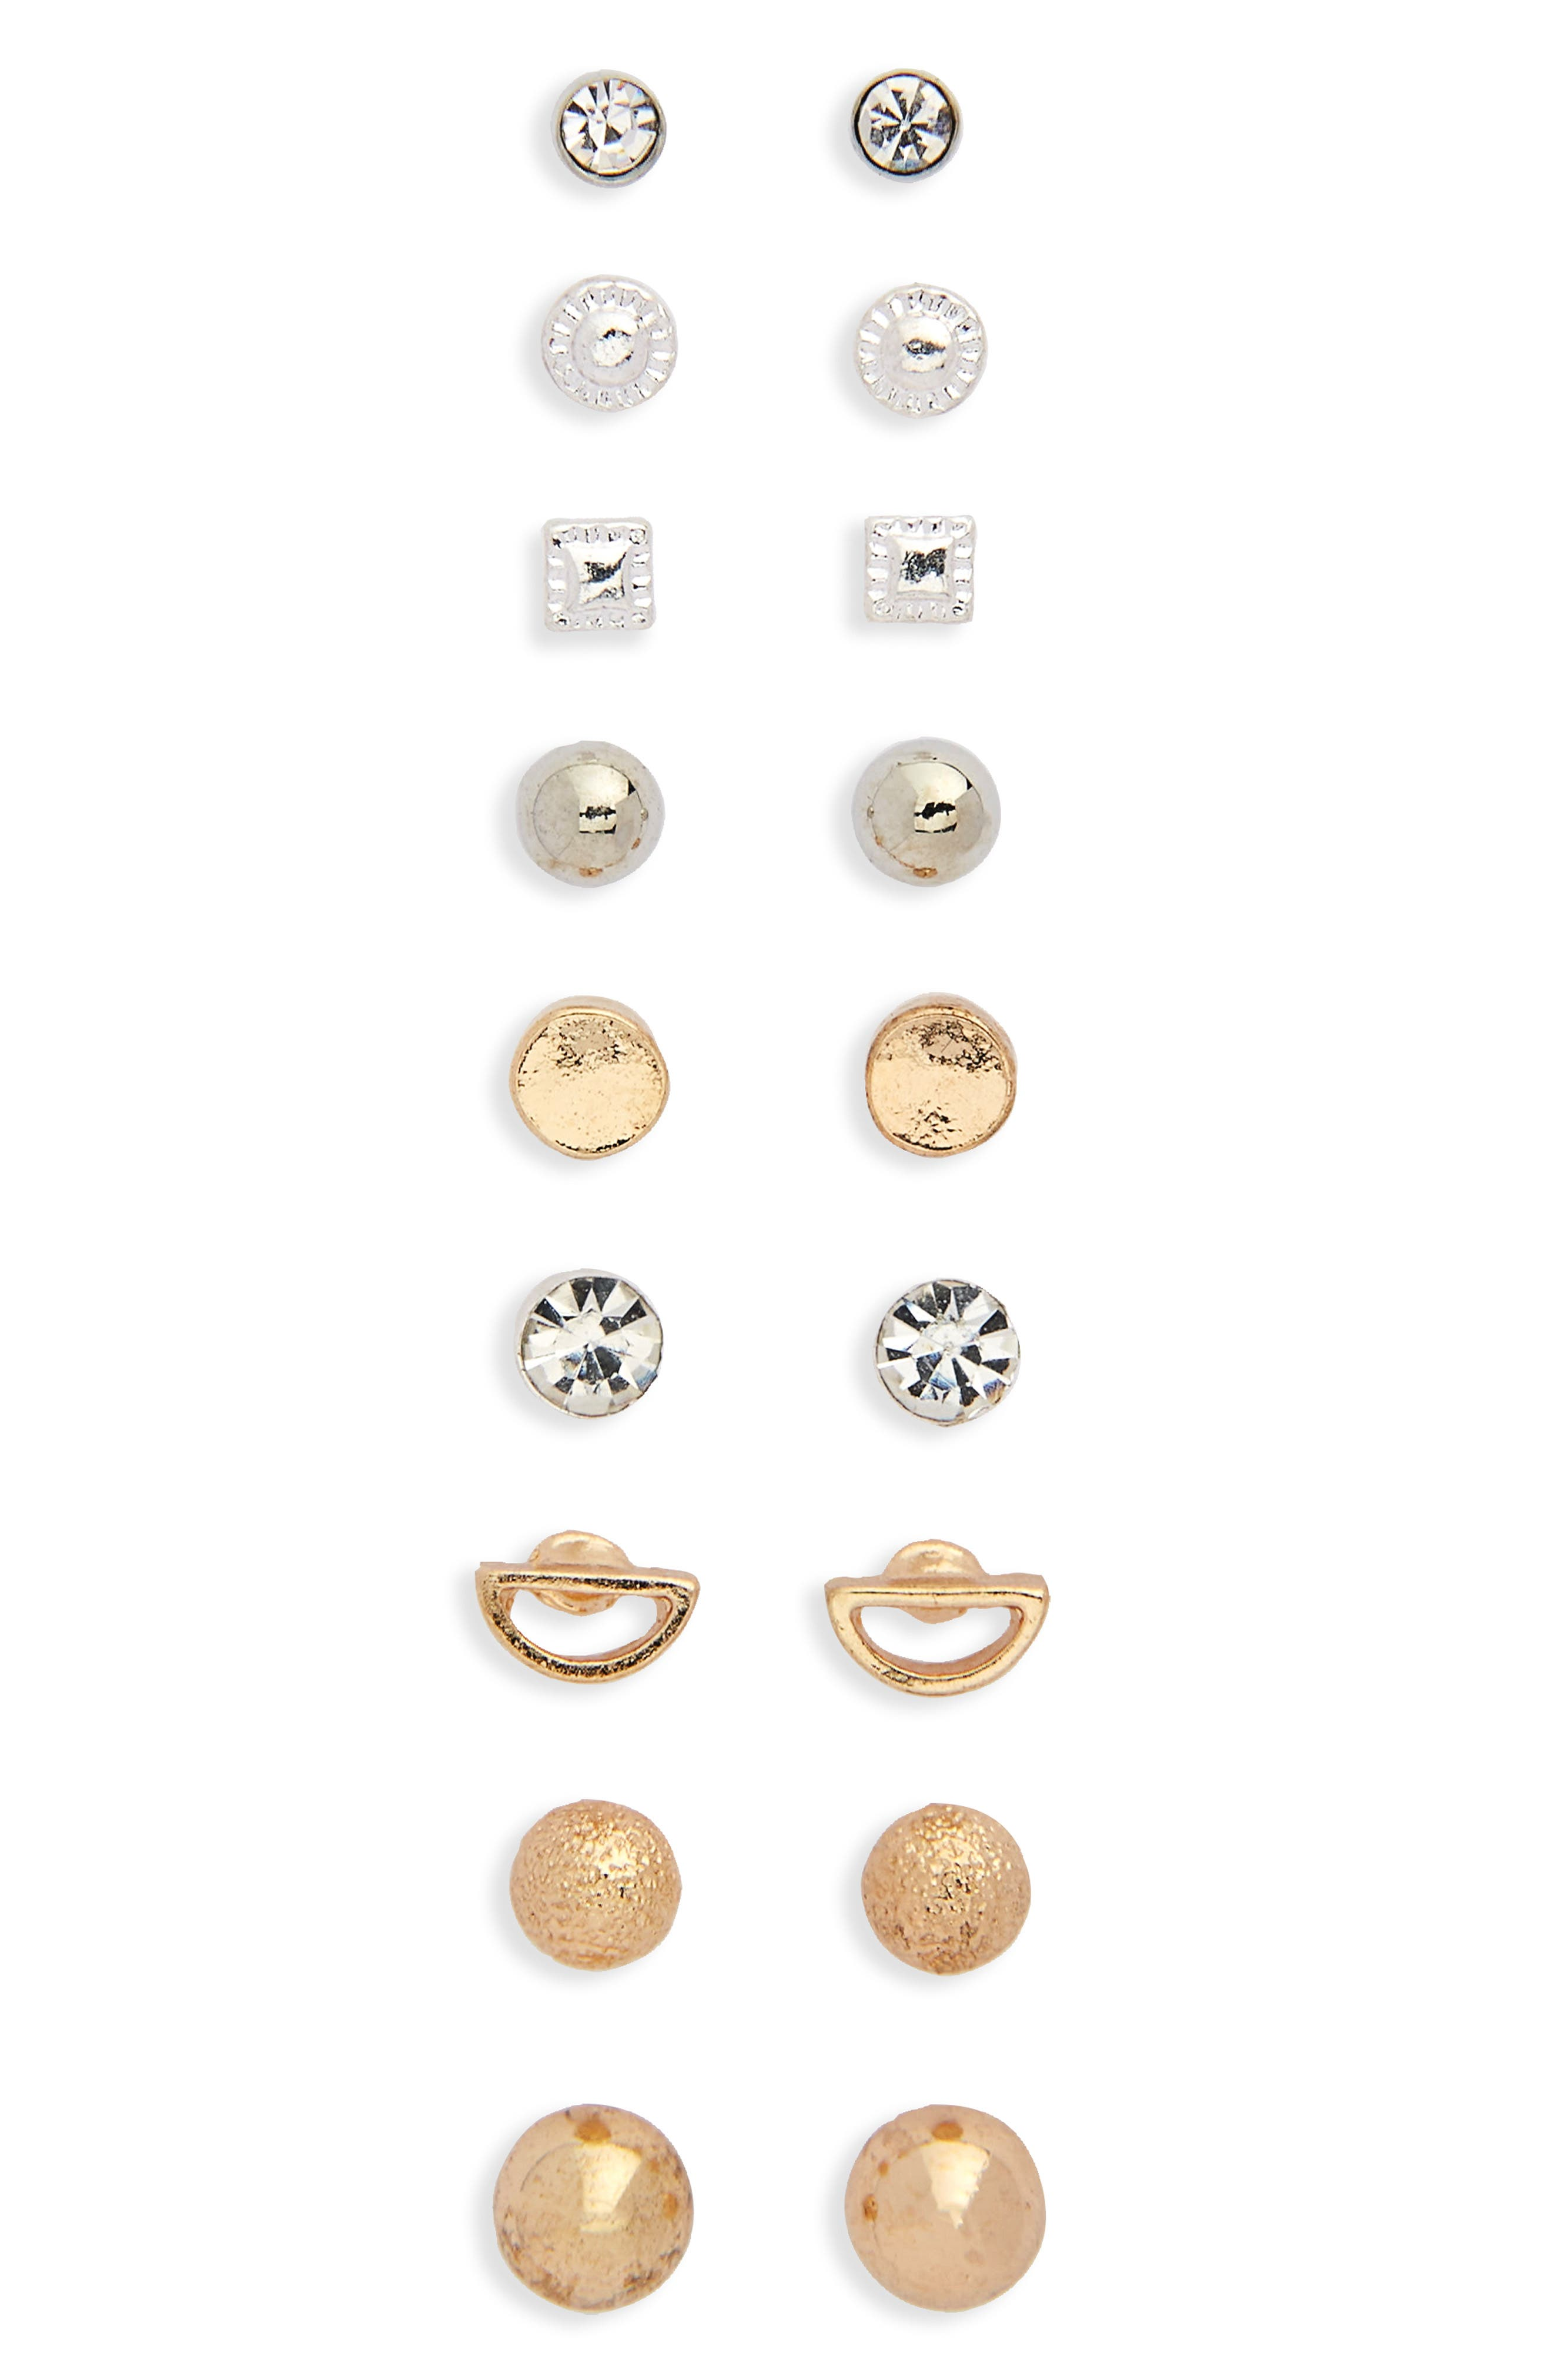 9-Pack Dainty Stud Earrings,                         Main,                         color, Gold/ Silver